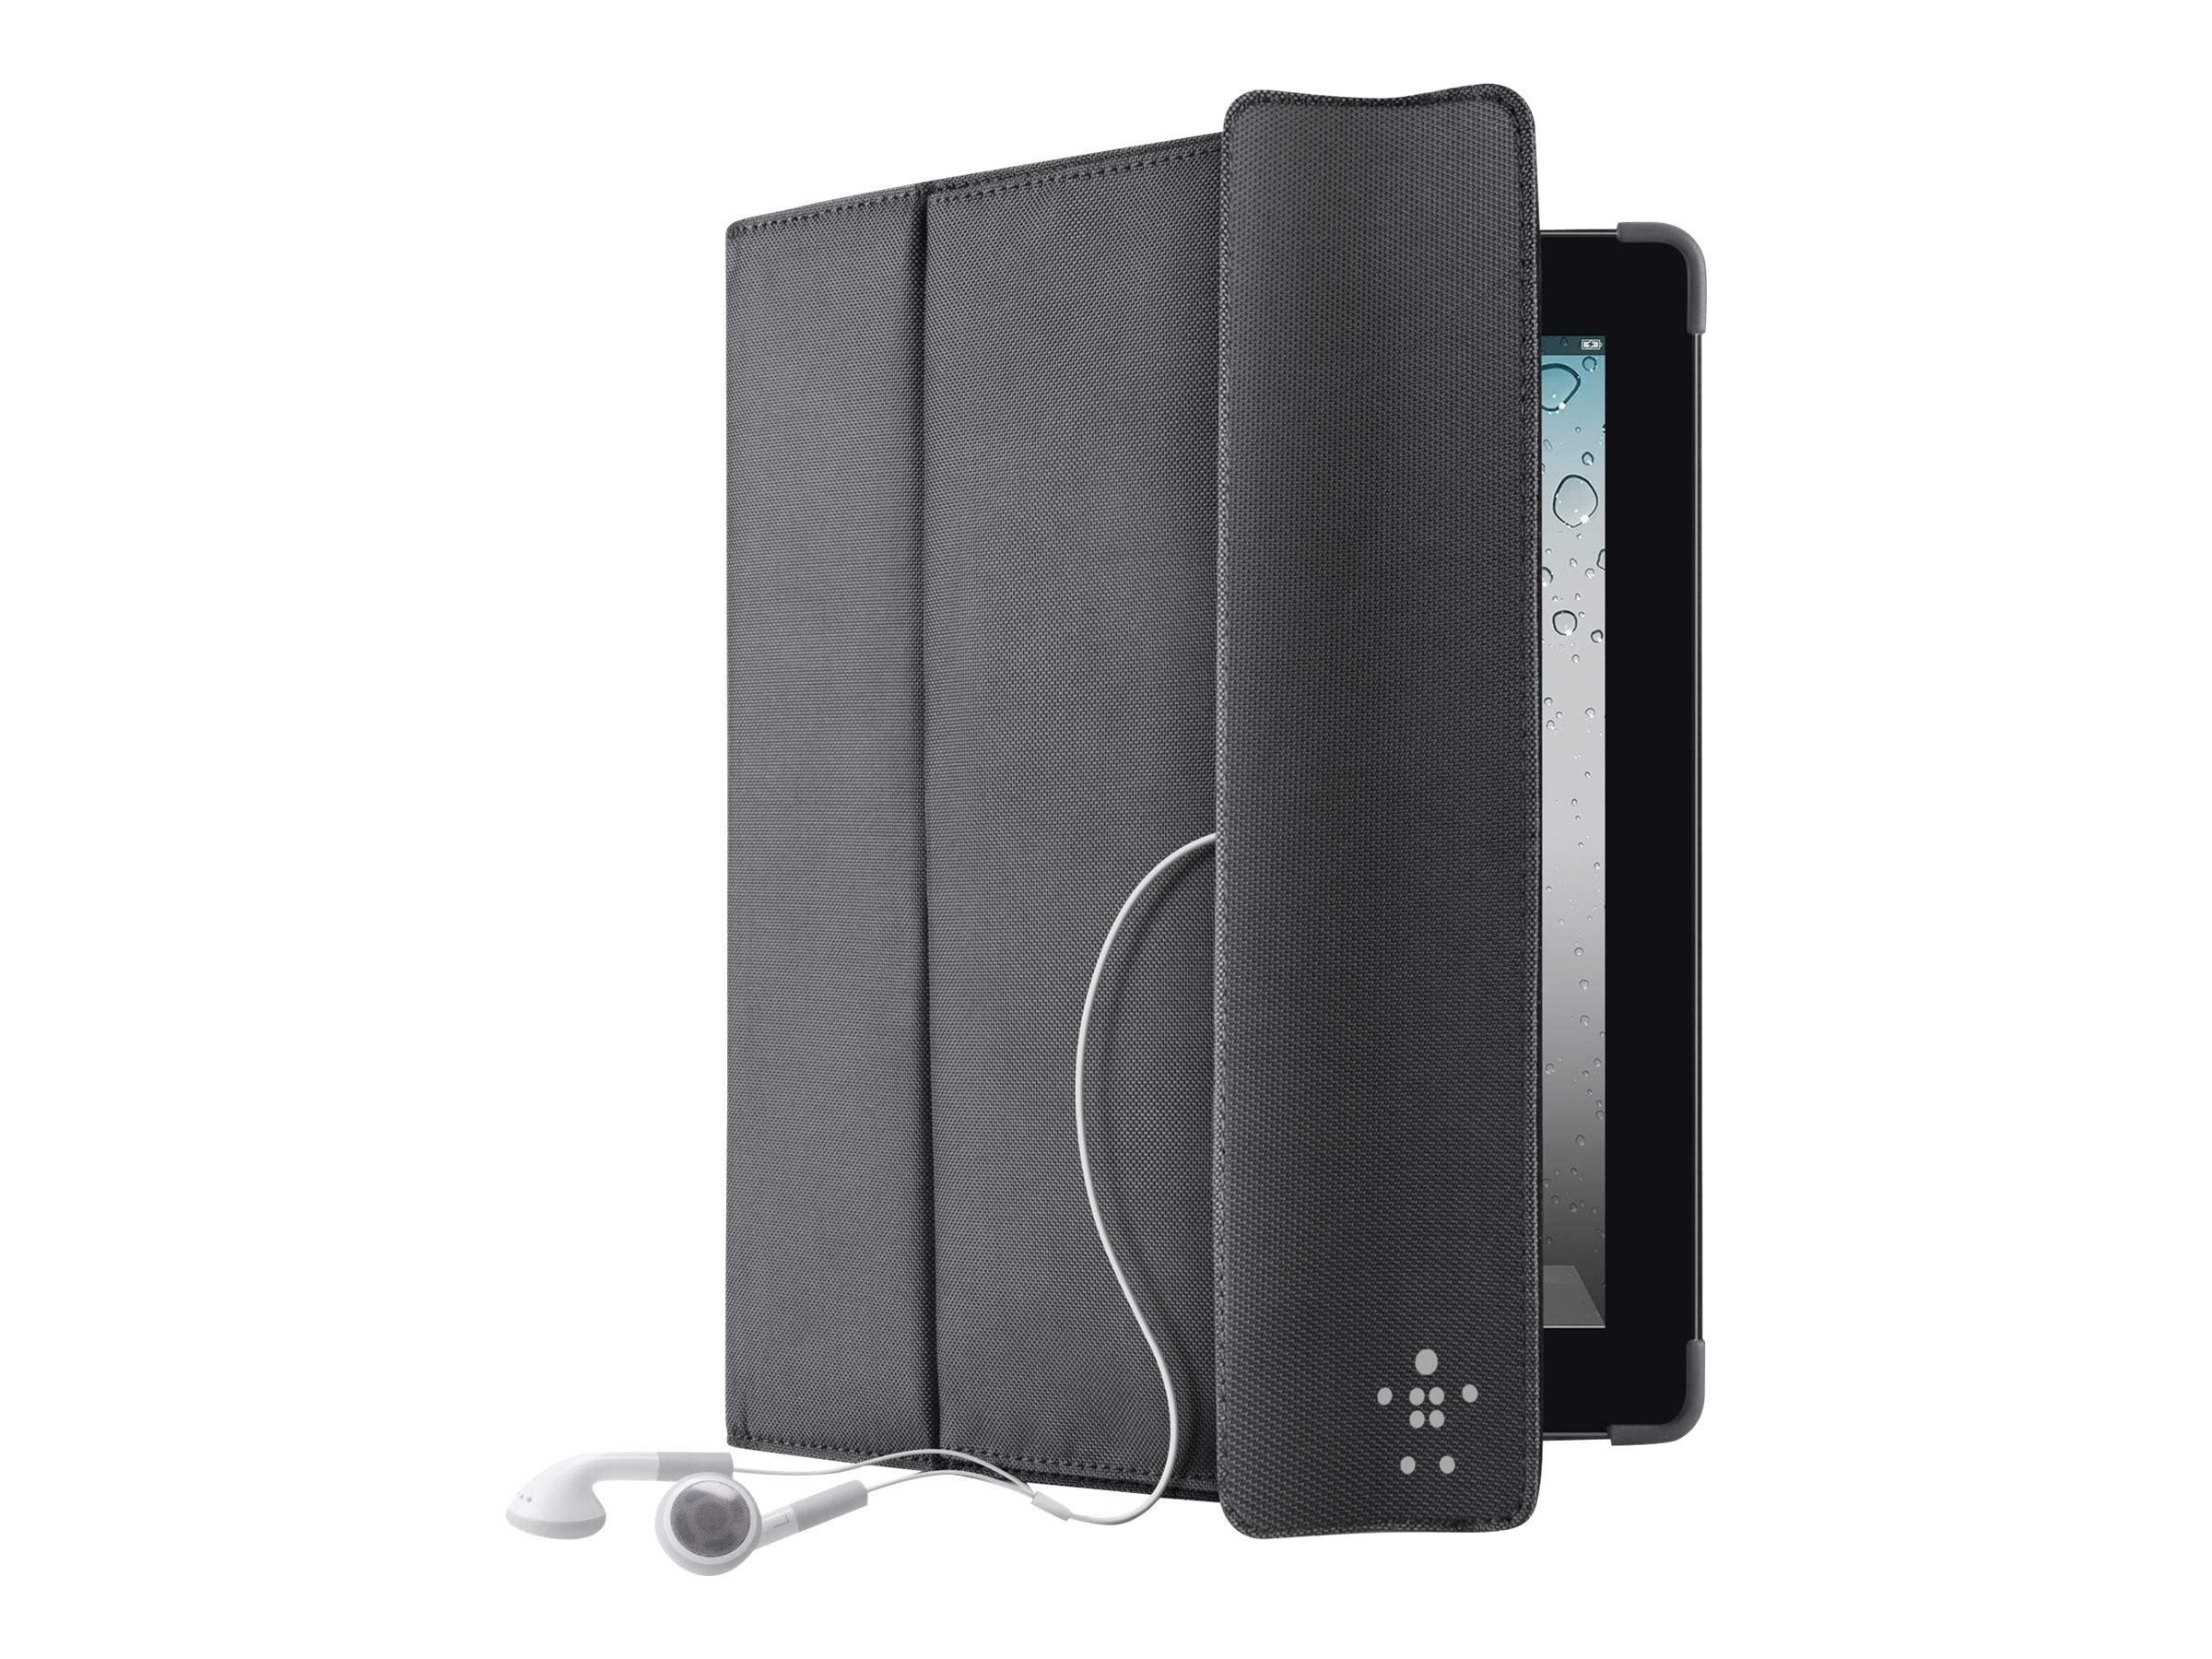 Belkin Pro Storage Folio w  Screen Protector, B2A001-C00, 14679683, Carrying Cases - Tablets & eReaders